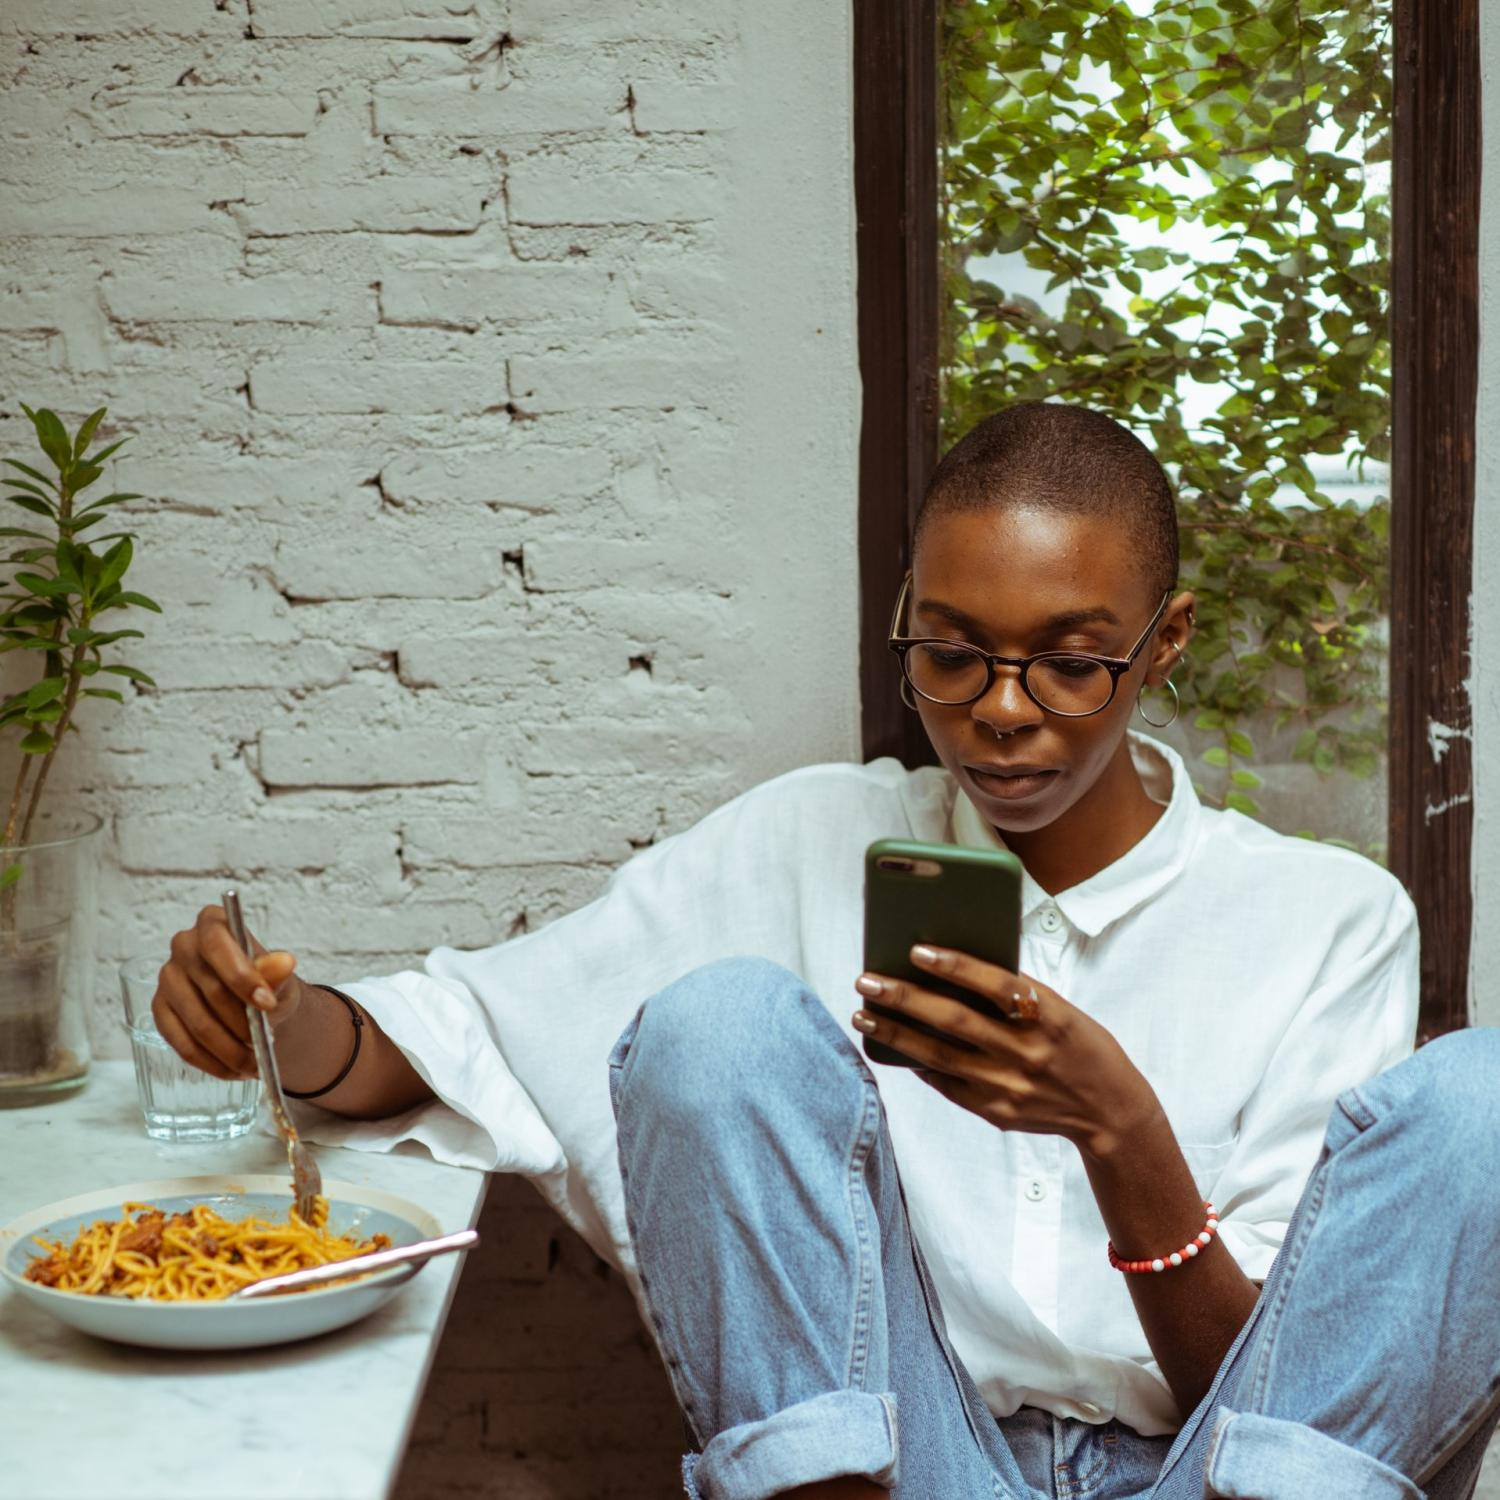 Student on Phone Eating Pasta